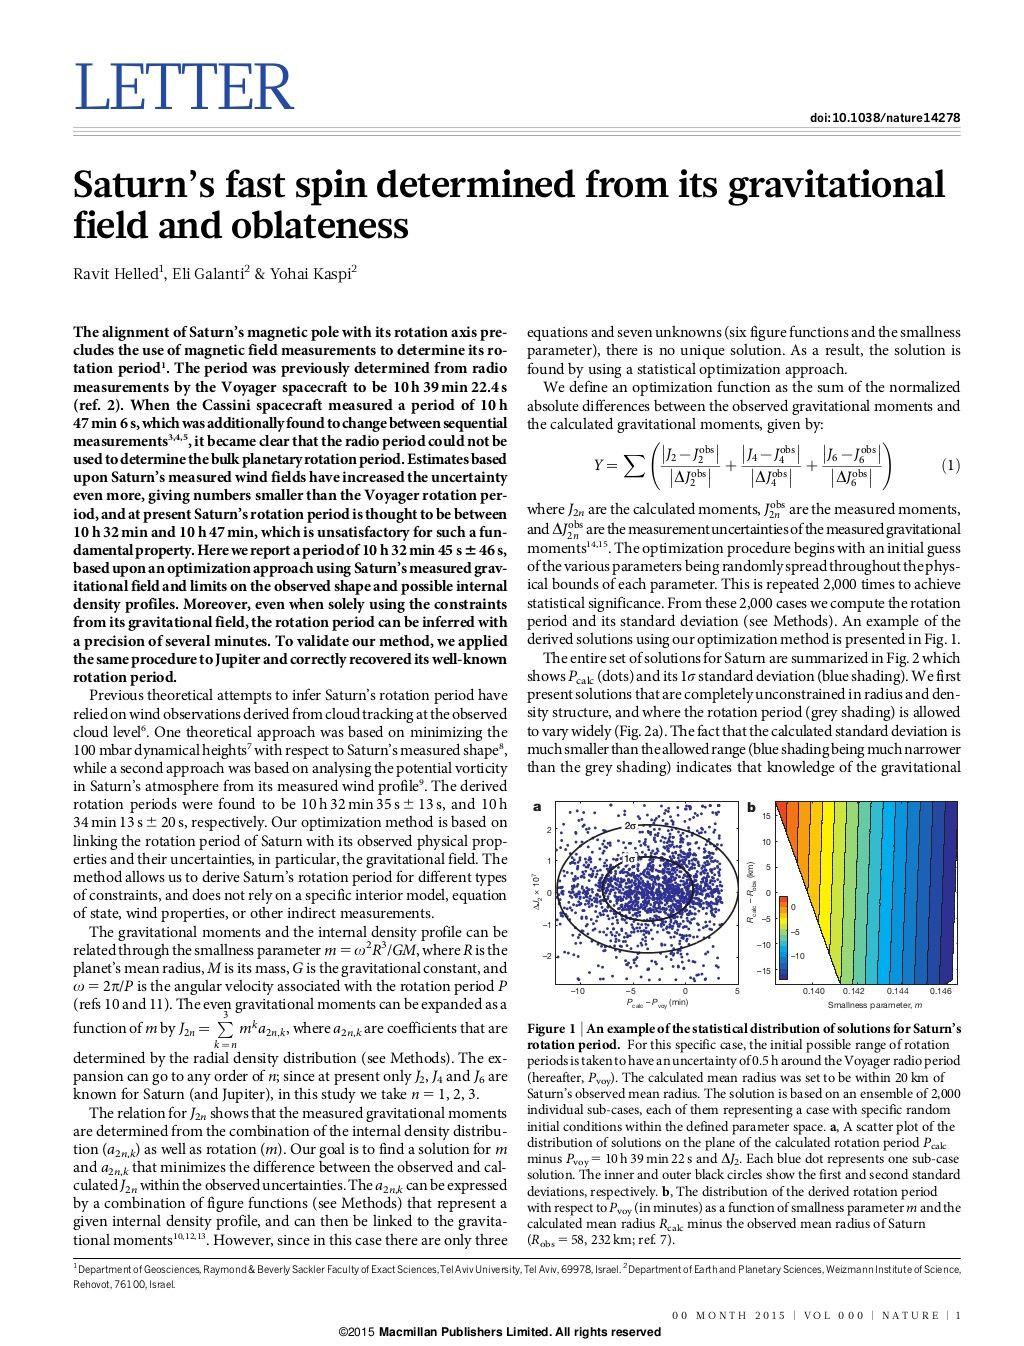 Saturns fast spin_determined_from_its_gravitational_field_and_oblateness by Sérgio Sacani via slideshare